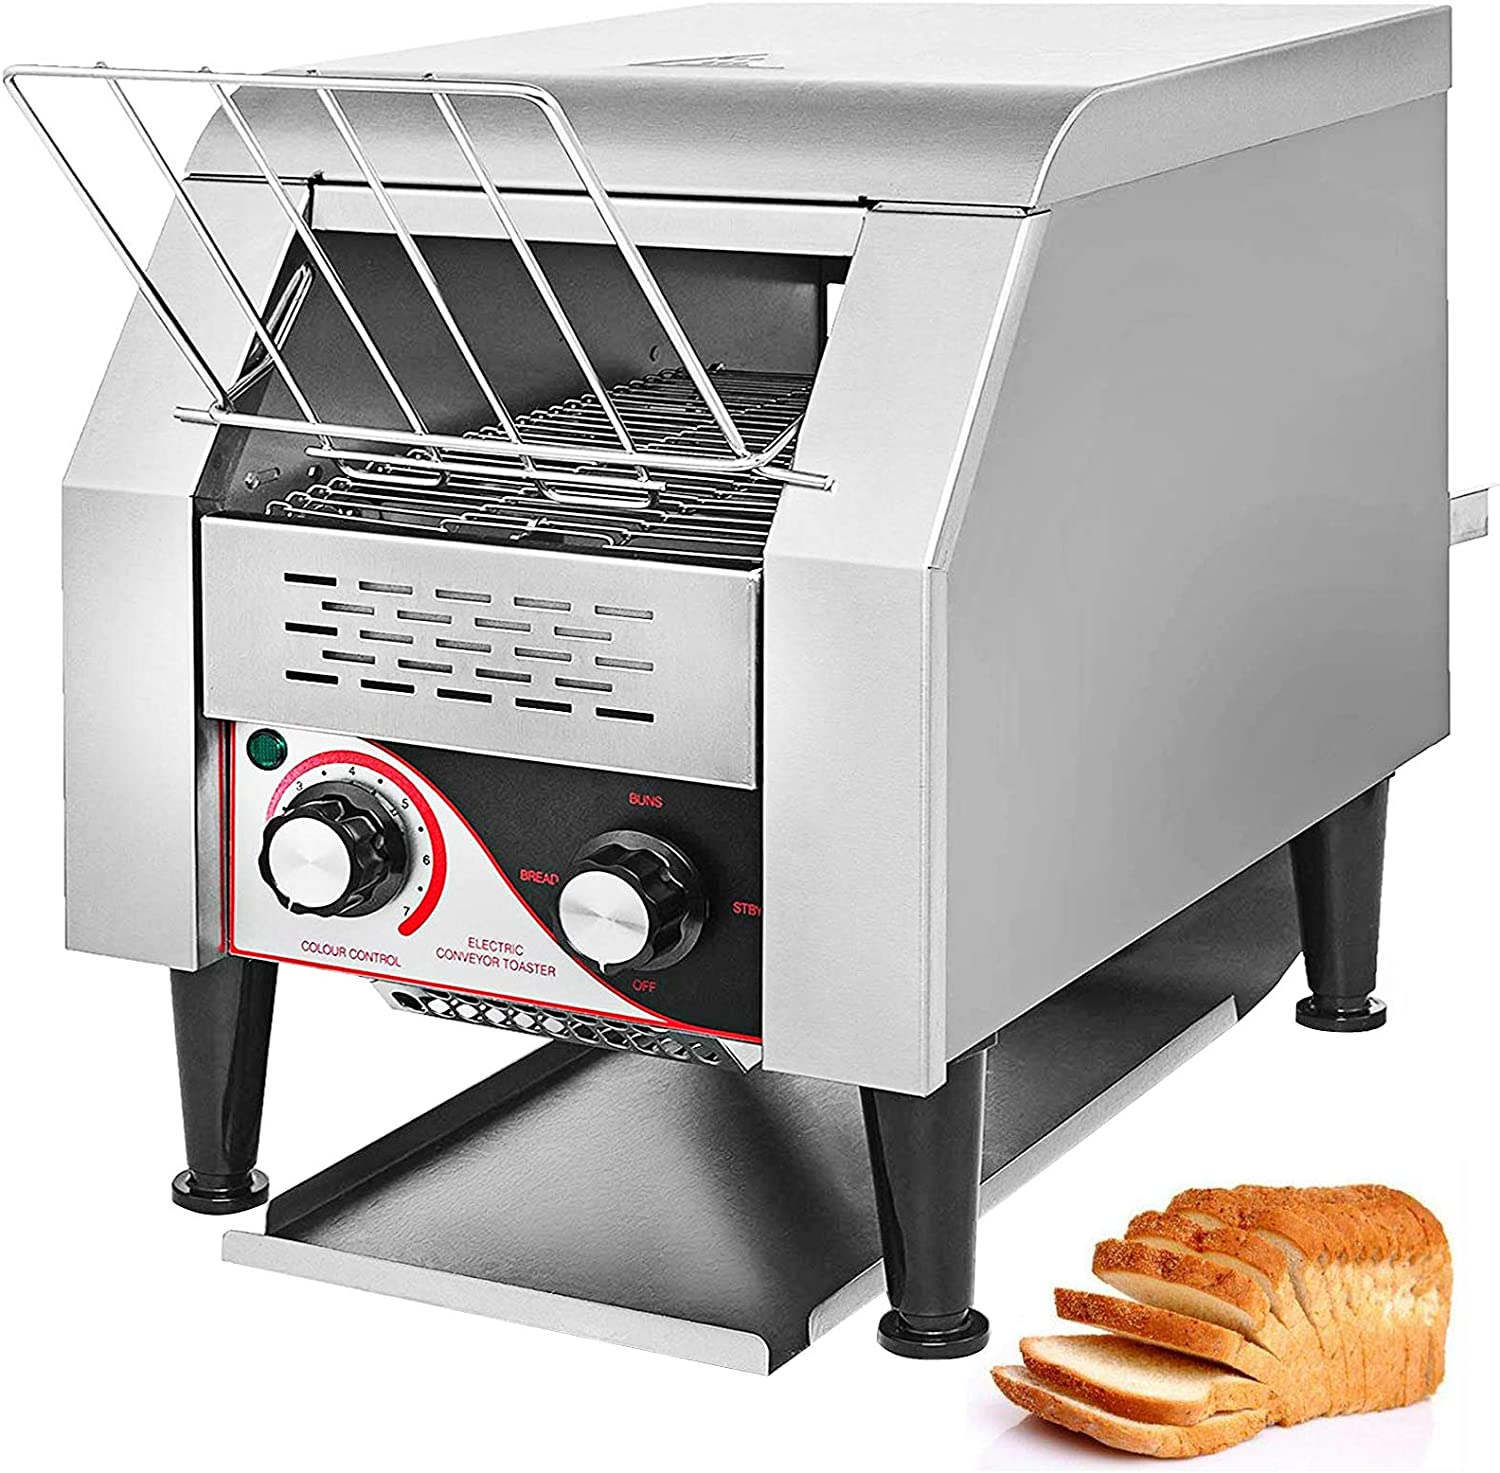 VEVOR 1340W Commercial Conveyor Toaster 150PCS/Hour Electric Heavy Duty Stainless Steel for Restaurant Breakfast, Sliver,110V